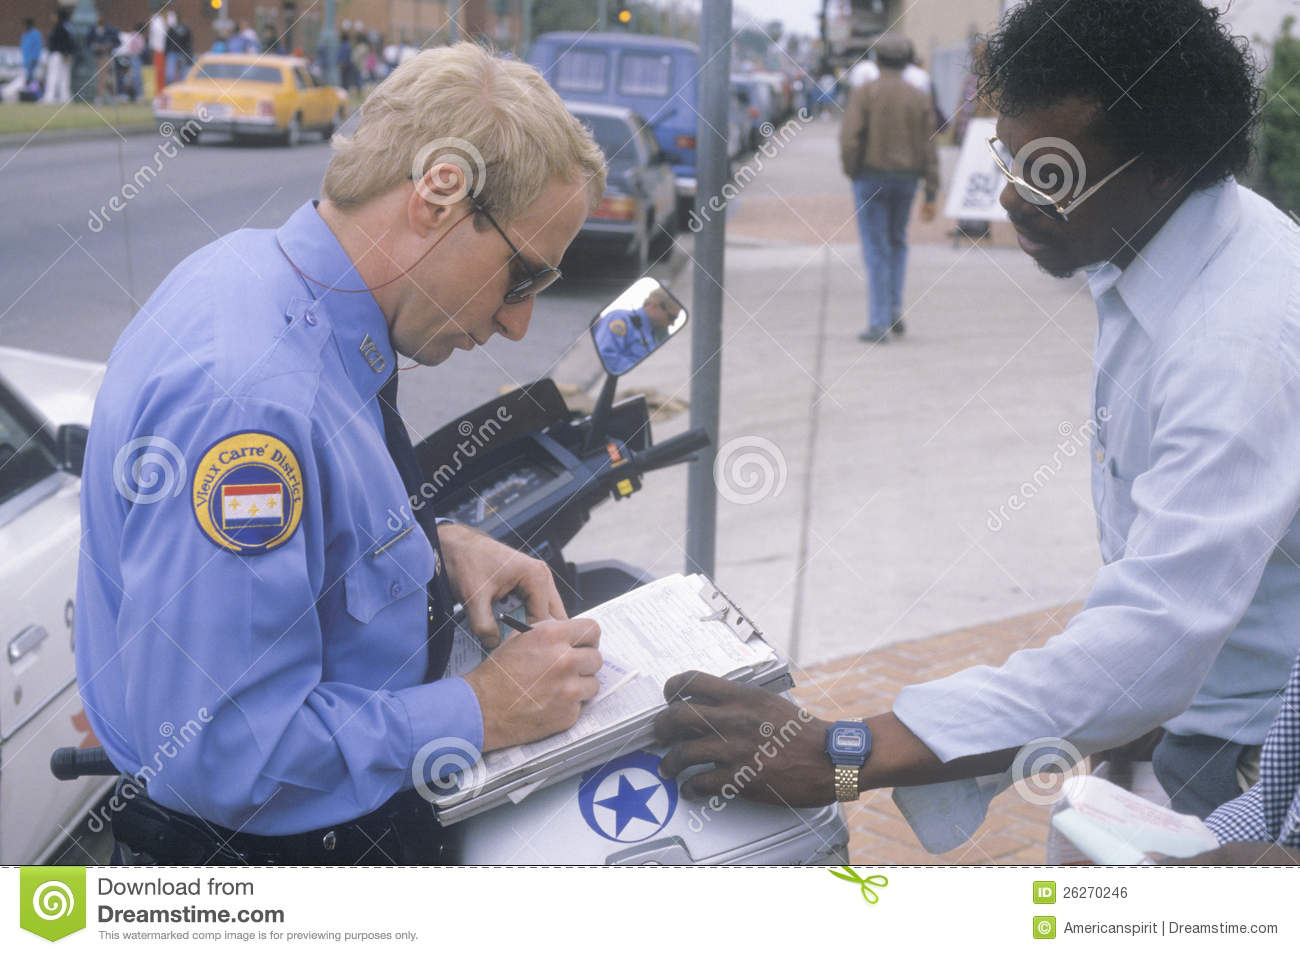 Traffic Ticket Stock Photos and Images